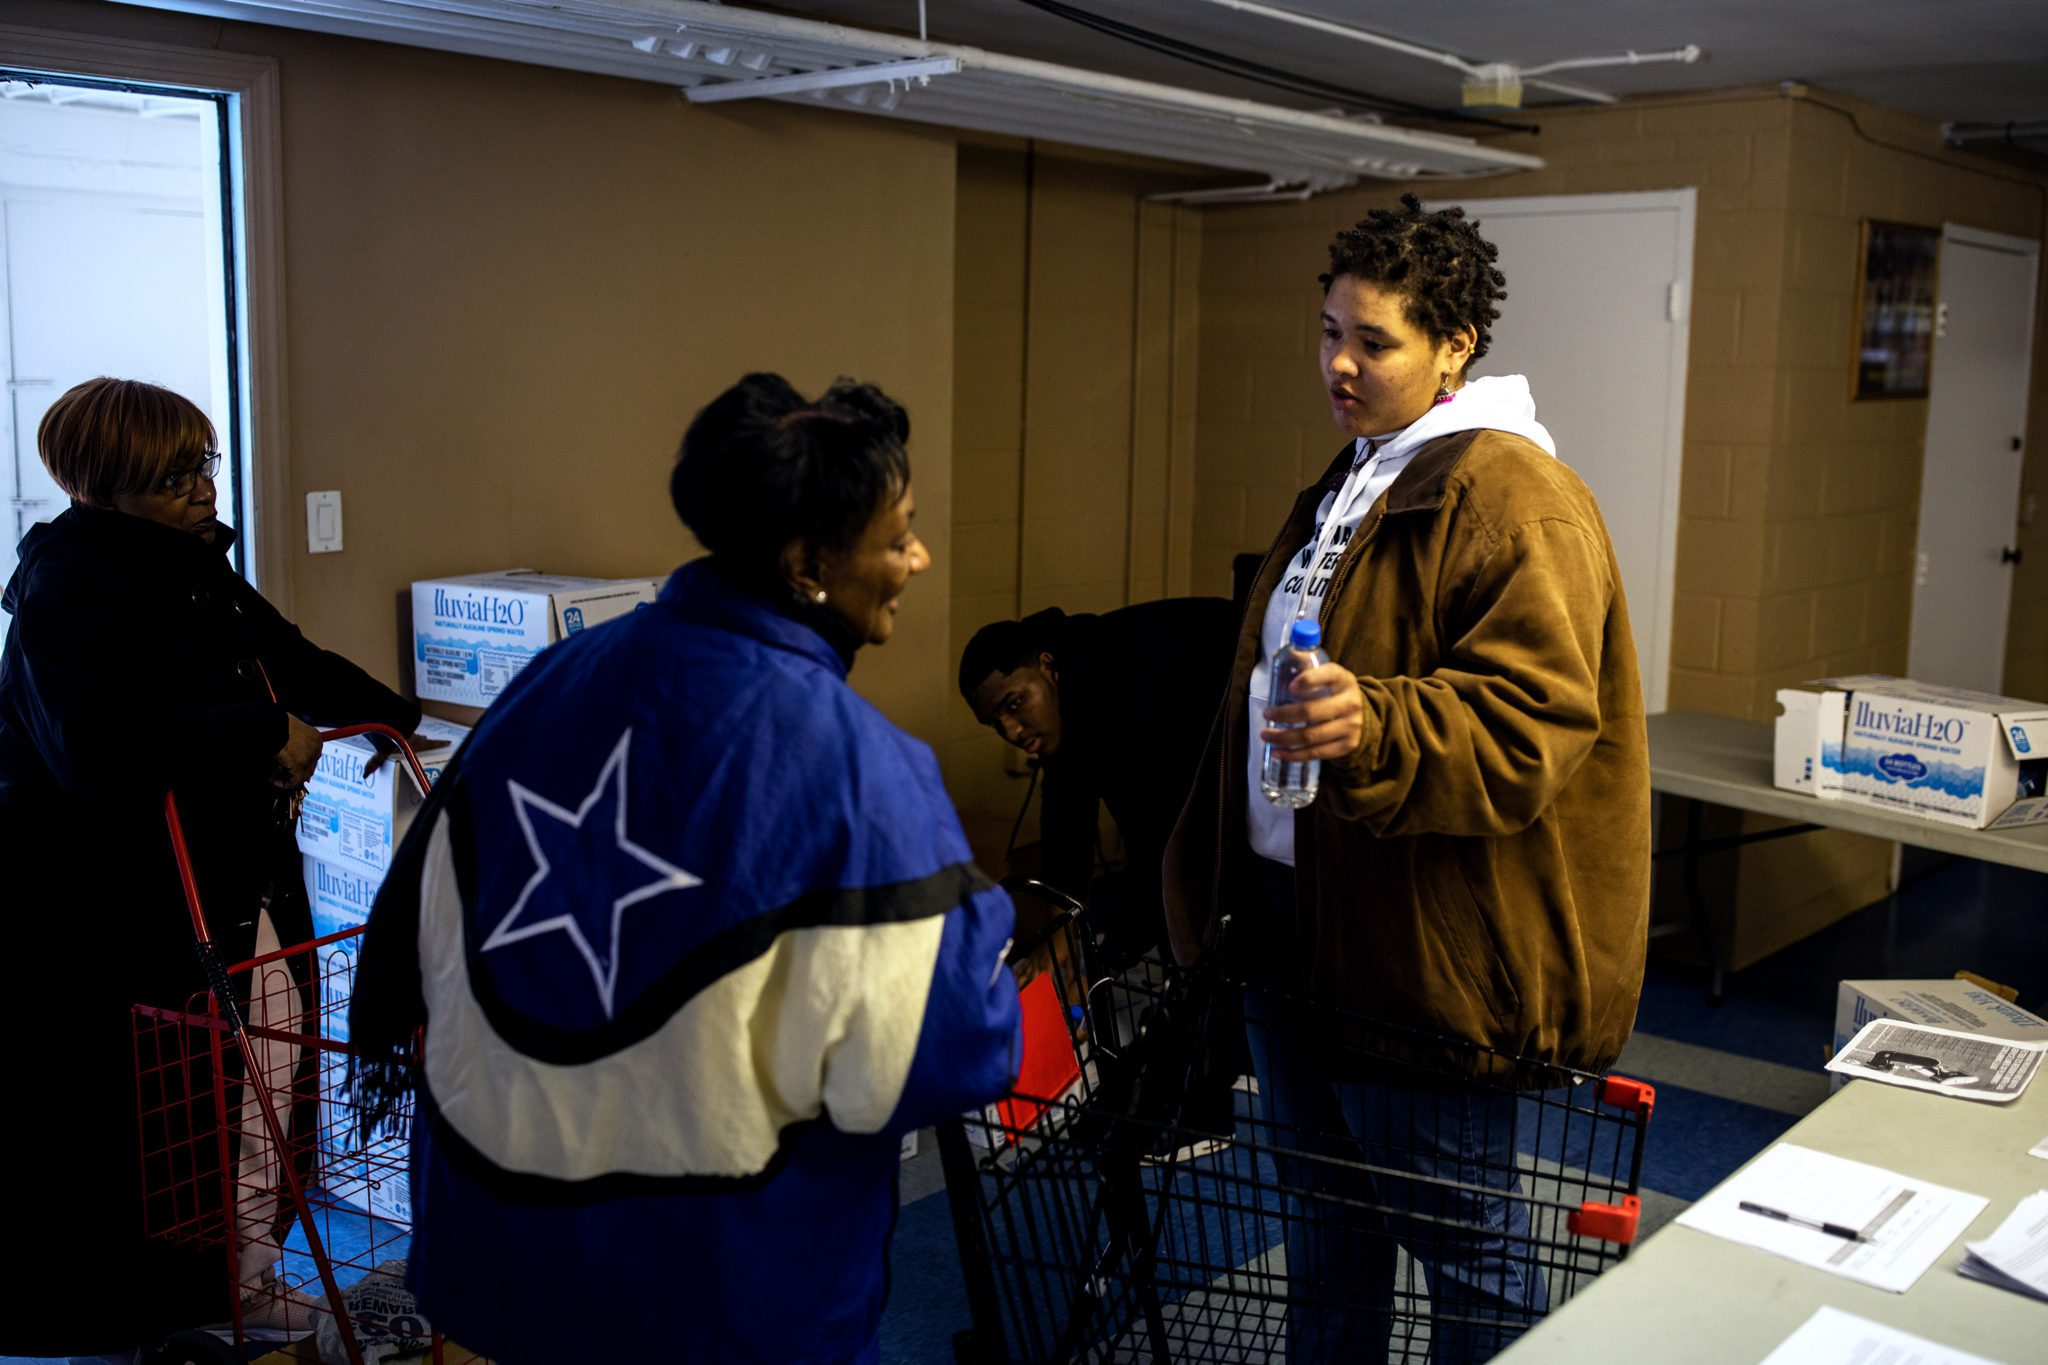 NEWARK, NJ. - FEBRUARY 22, 2020: Aka Awakening explains to a local resident that a new shipment of water will be delivered soon at St. Lucy's Rectory Church in Newark, NJ.